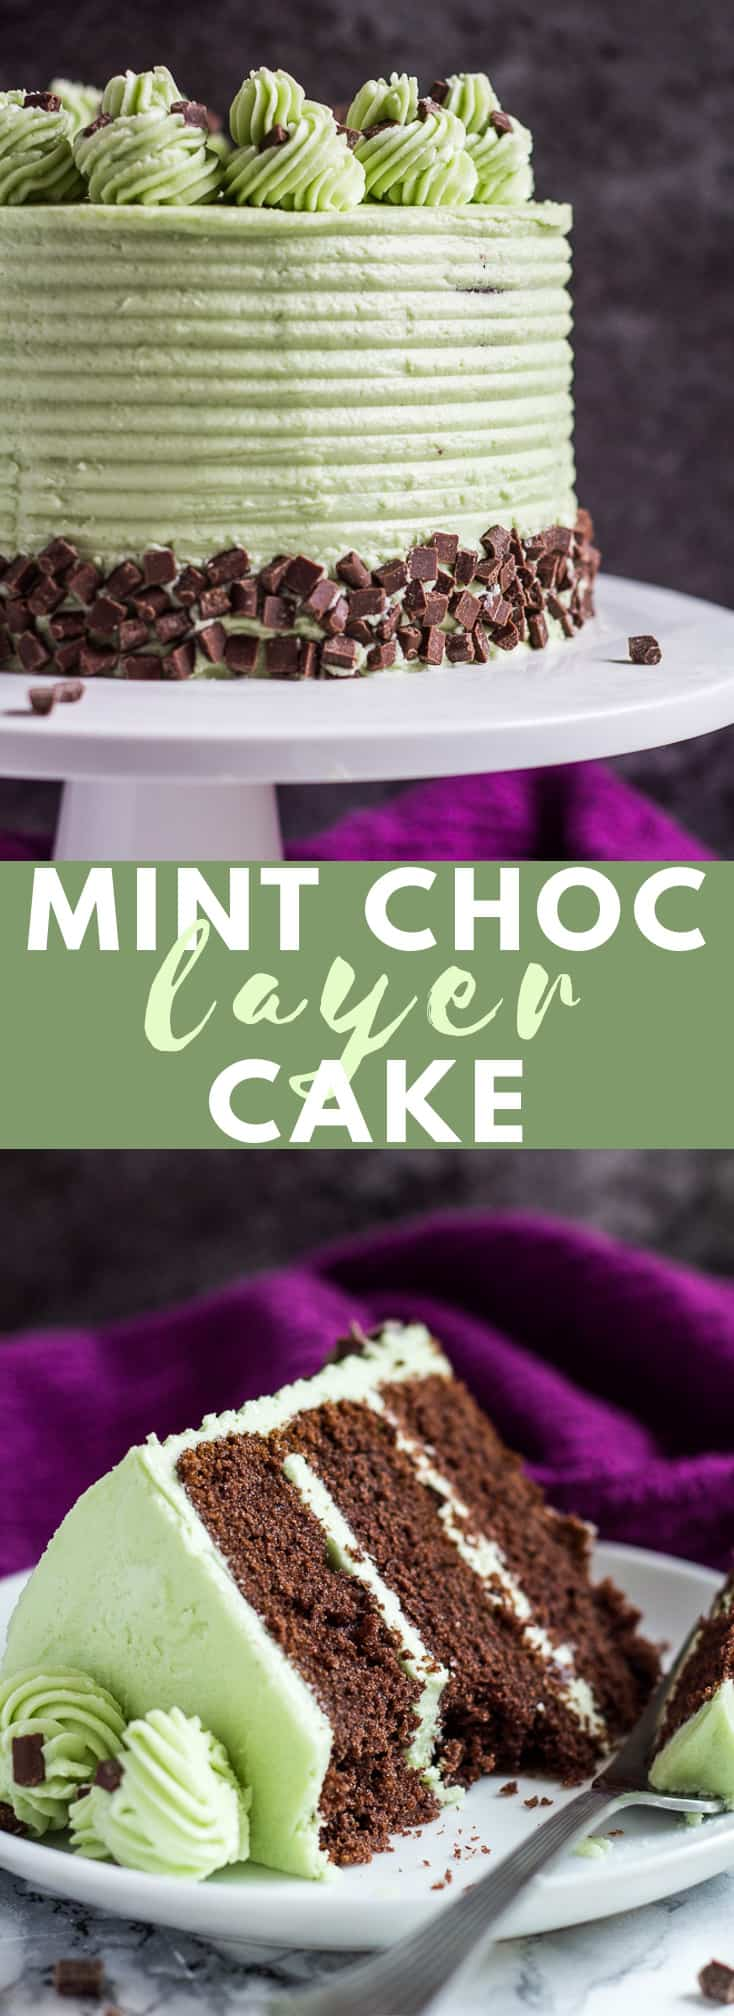 Mint Chocolate Chip Layer Cake – Deliciously moist and fluffy mint chocolate cake layered with silky Swiss meringue buttercream and chocolate chips!